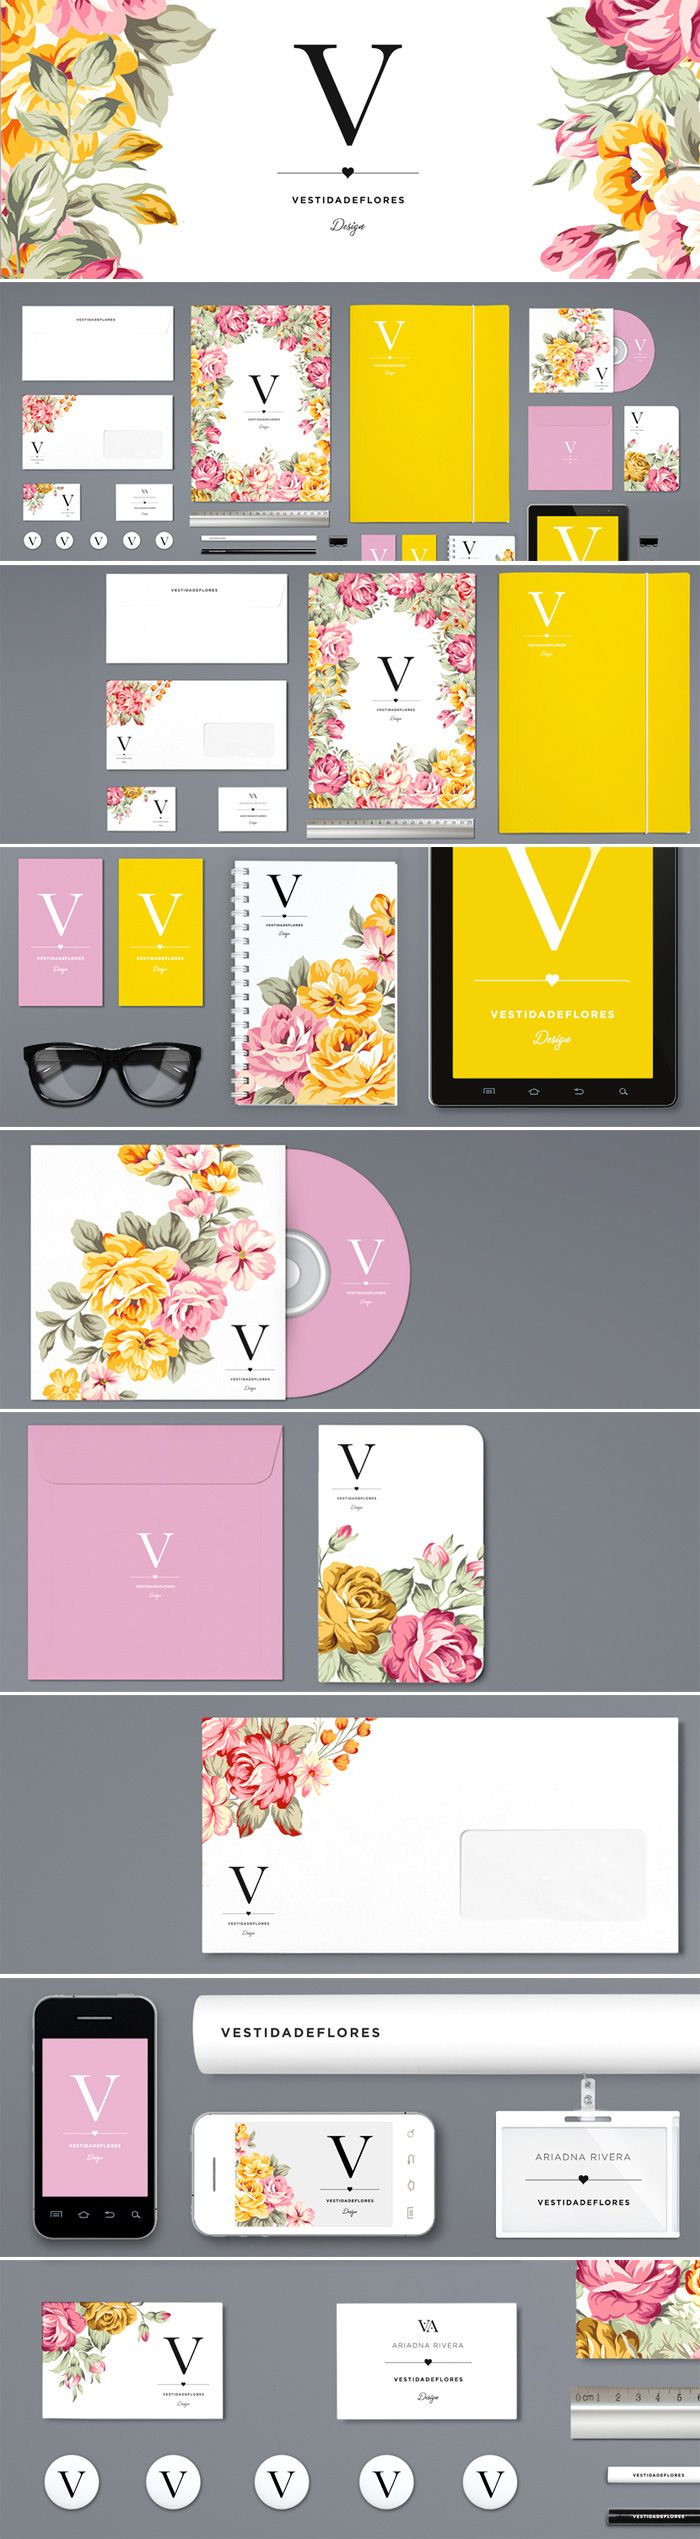 Diseño de identidad corporativa Vestidadeflores (by Ariadna Rivera) from Tela Papel Tijeras #Branding and #logo #design